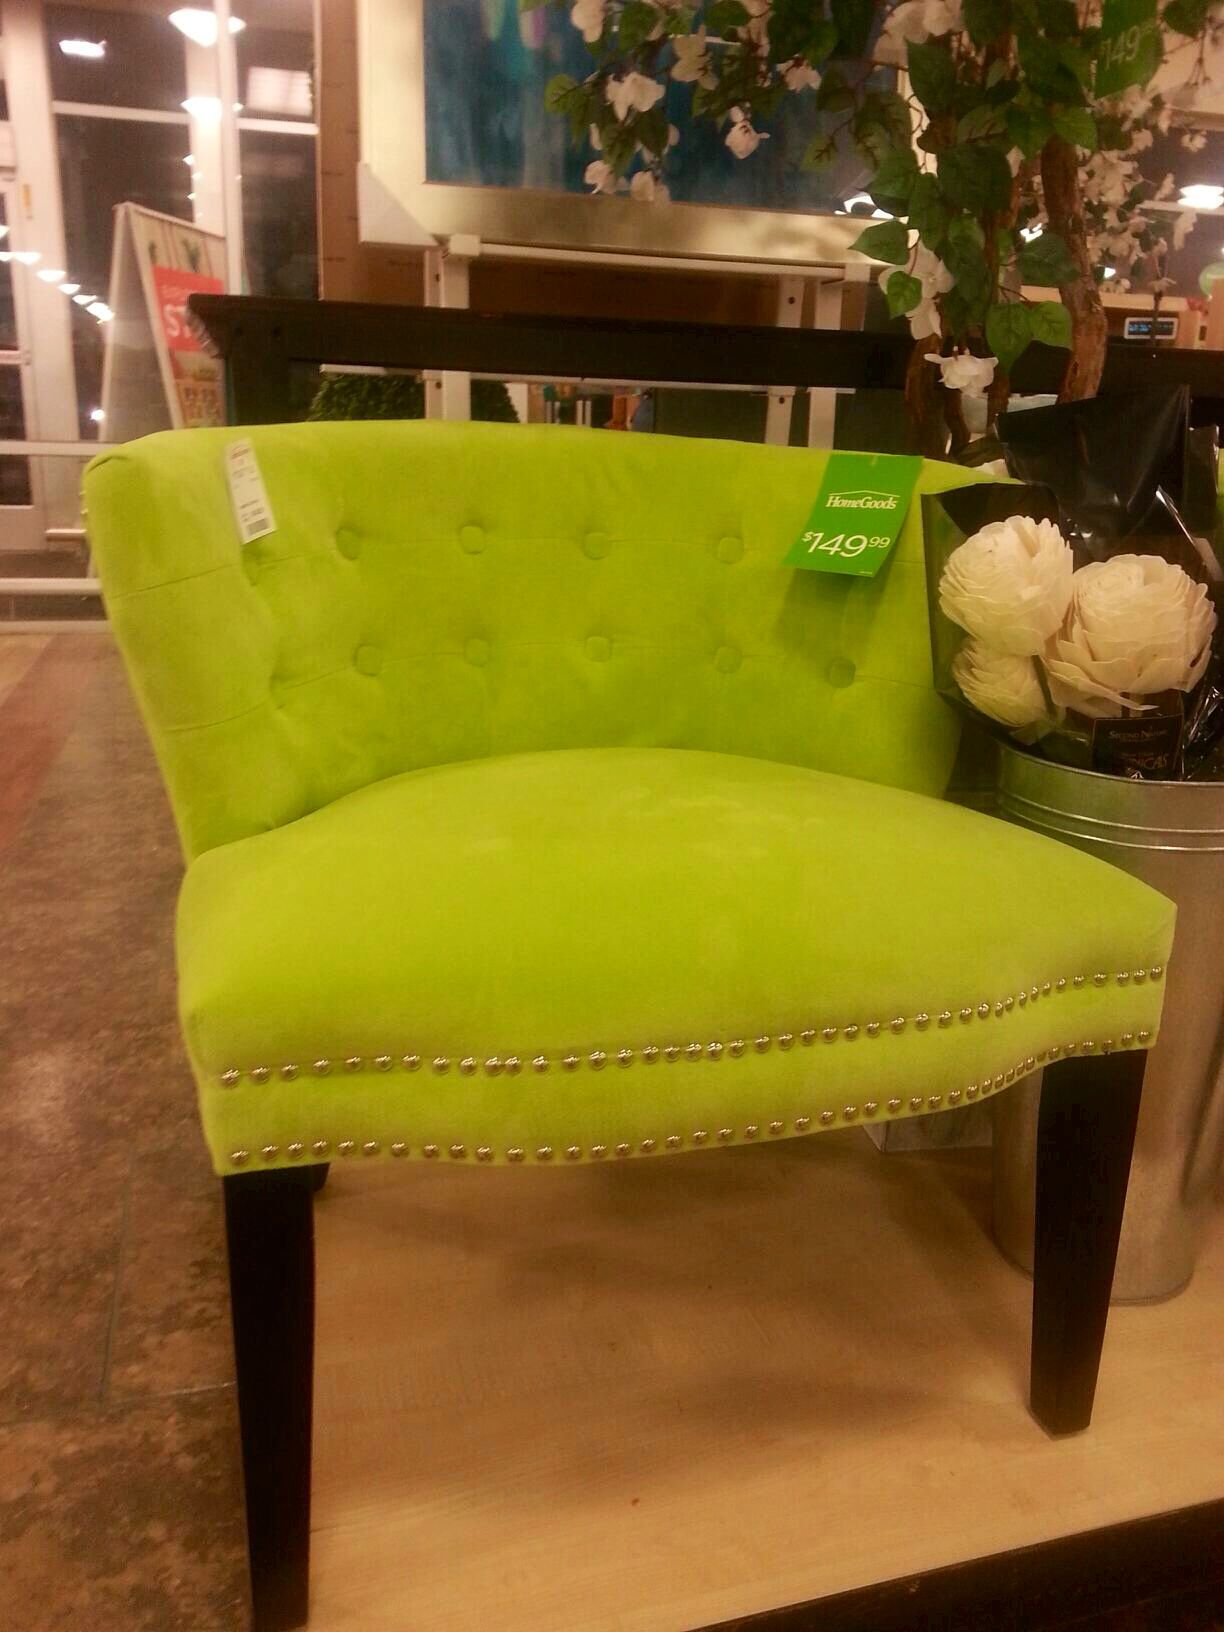 Home Goods Furniture Chairs Marshalls Home Goods Furniture Lighting Furniture Design Hooked